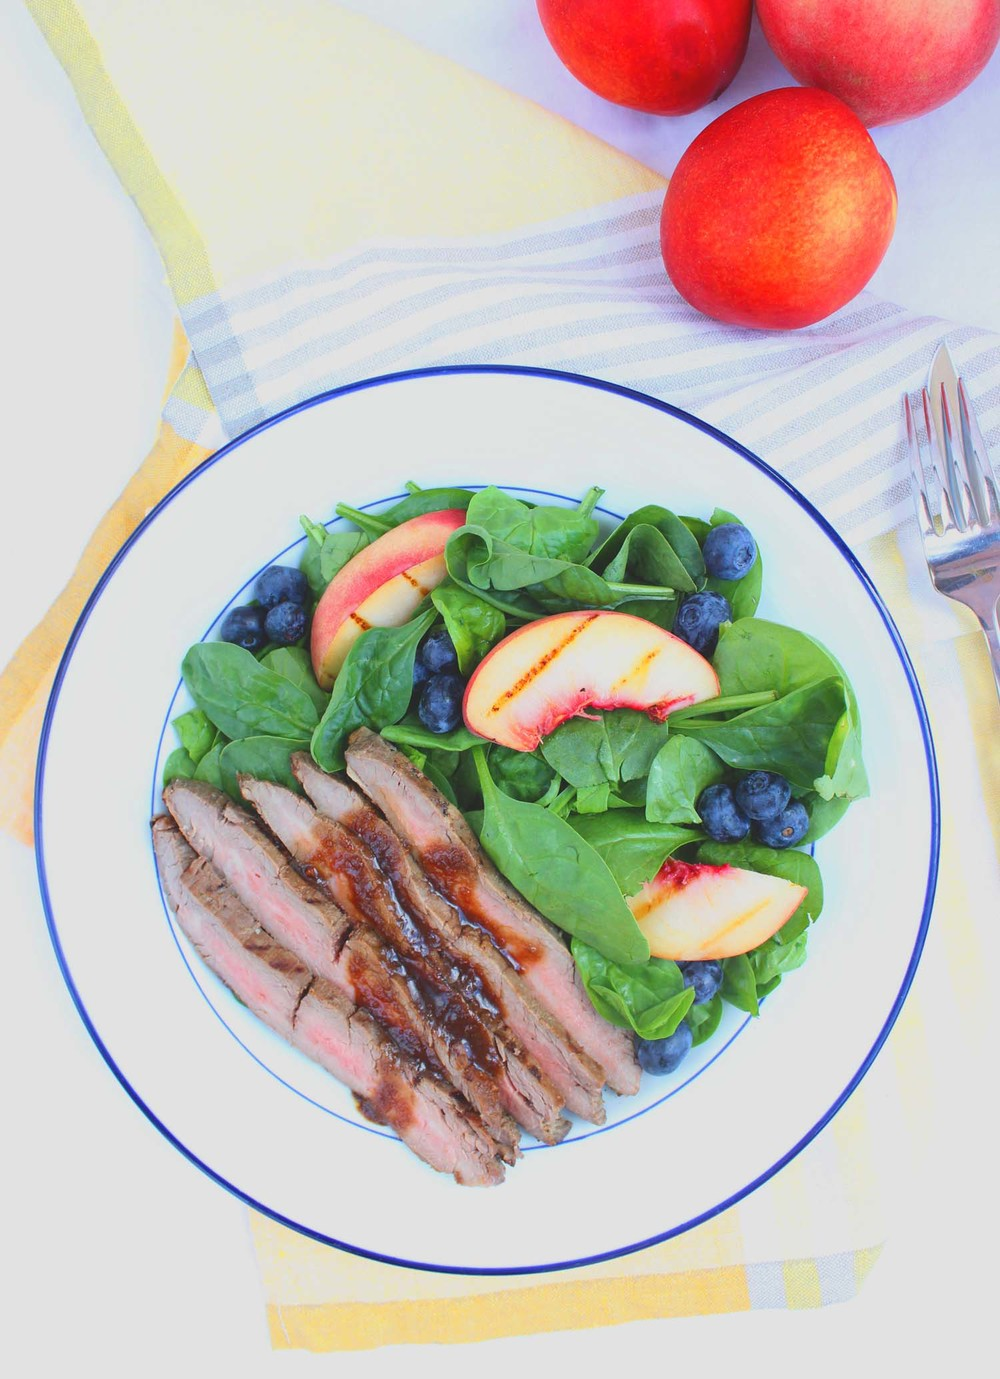 Bourbon & Brown Sugar Marinated Steak  | Image:  Laura Messersmith